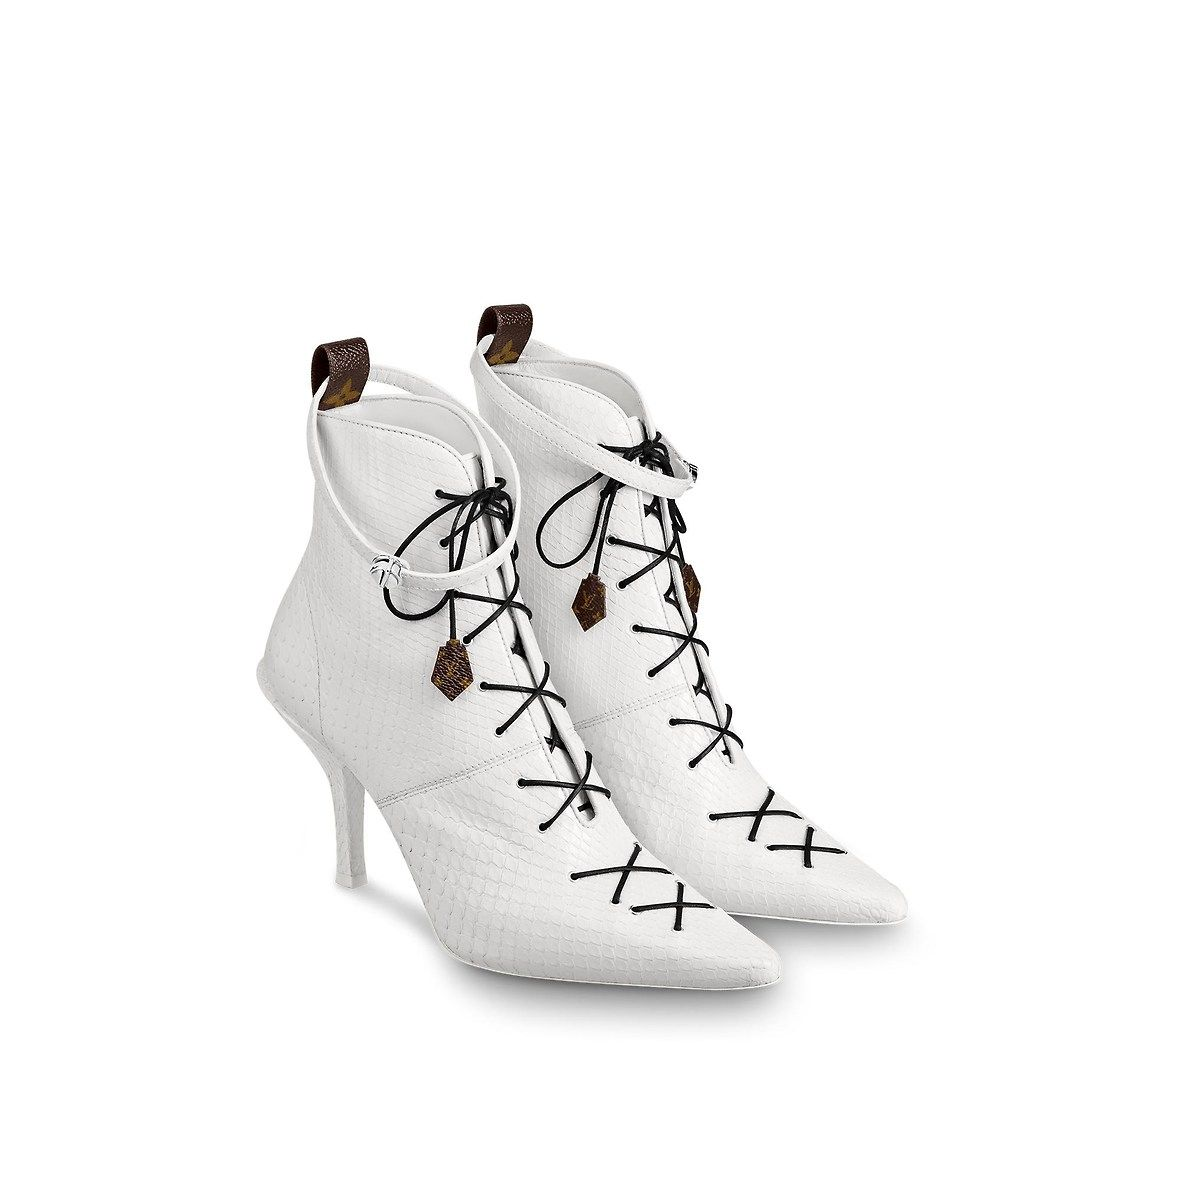 abbfd7c5da Lv Janet Ankle Boot - Shoes | LOUIS VUITTON | clothes in 2019 ...